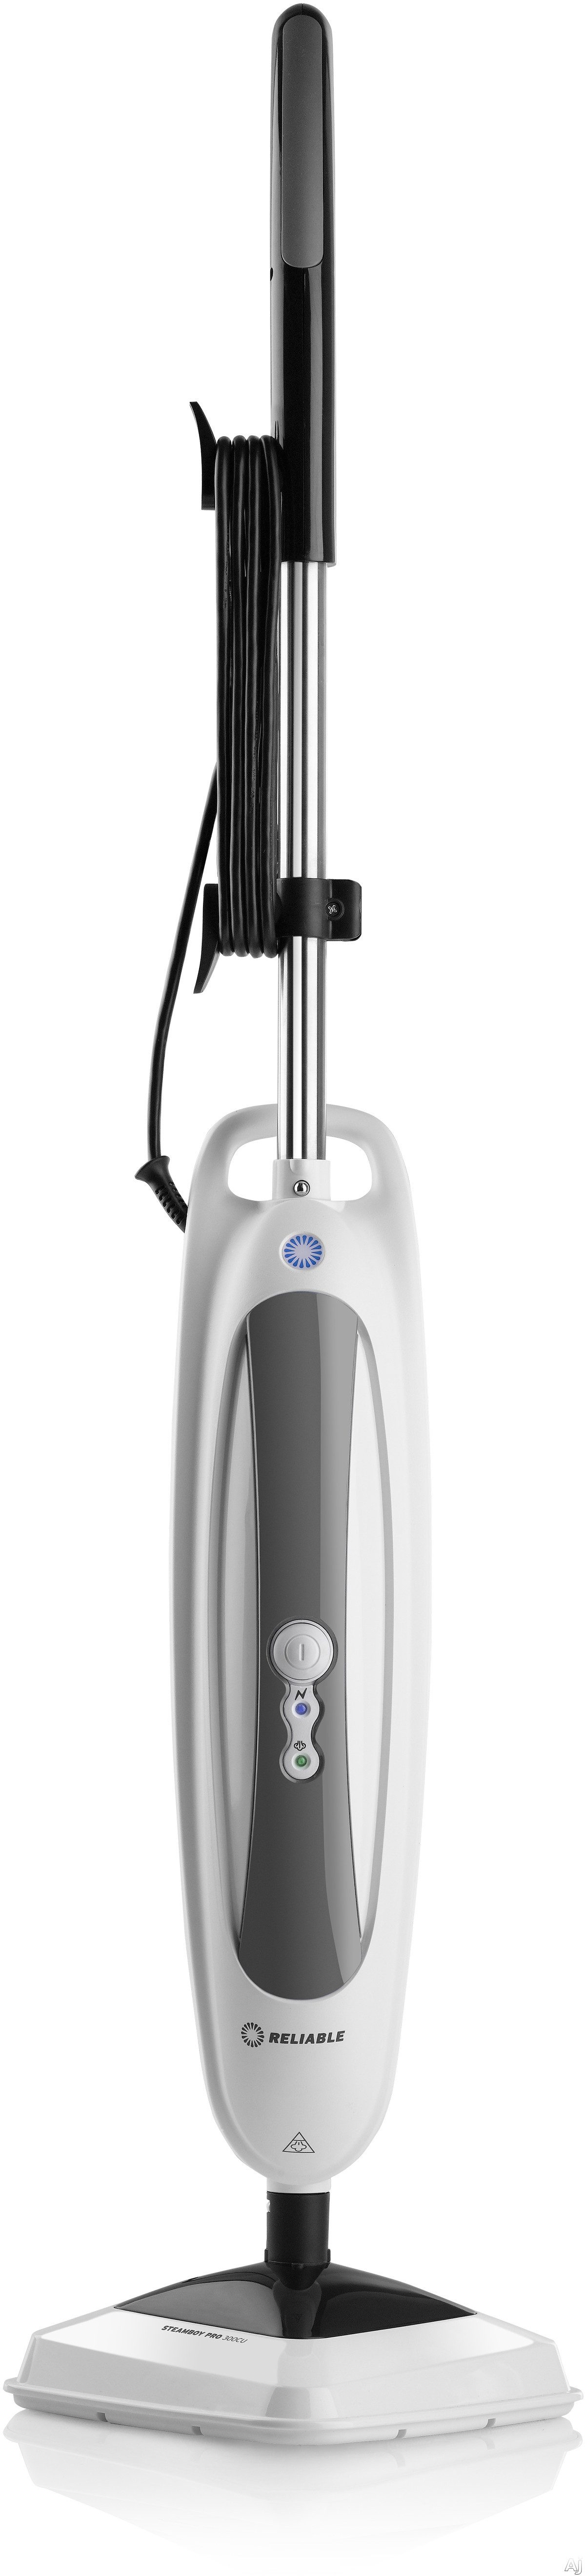 Reliable 300CU Steamboy Pro 300CU Steam Mop with 180-Degree Swivel Head, Powerful Scrubber, Carpet Sanitizing, Microfiber Pads, Removable Water Tank, 245-Degree Steam Temperature and Chemical Free Cleaning